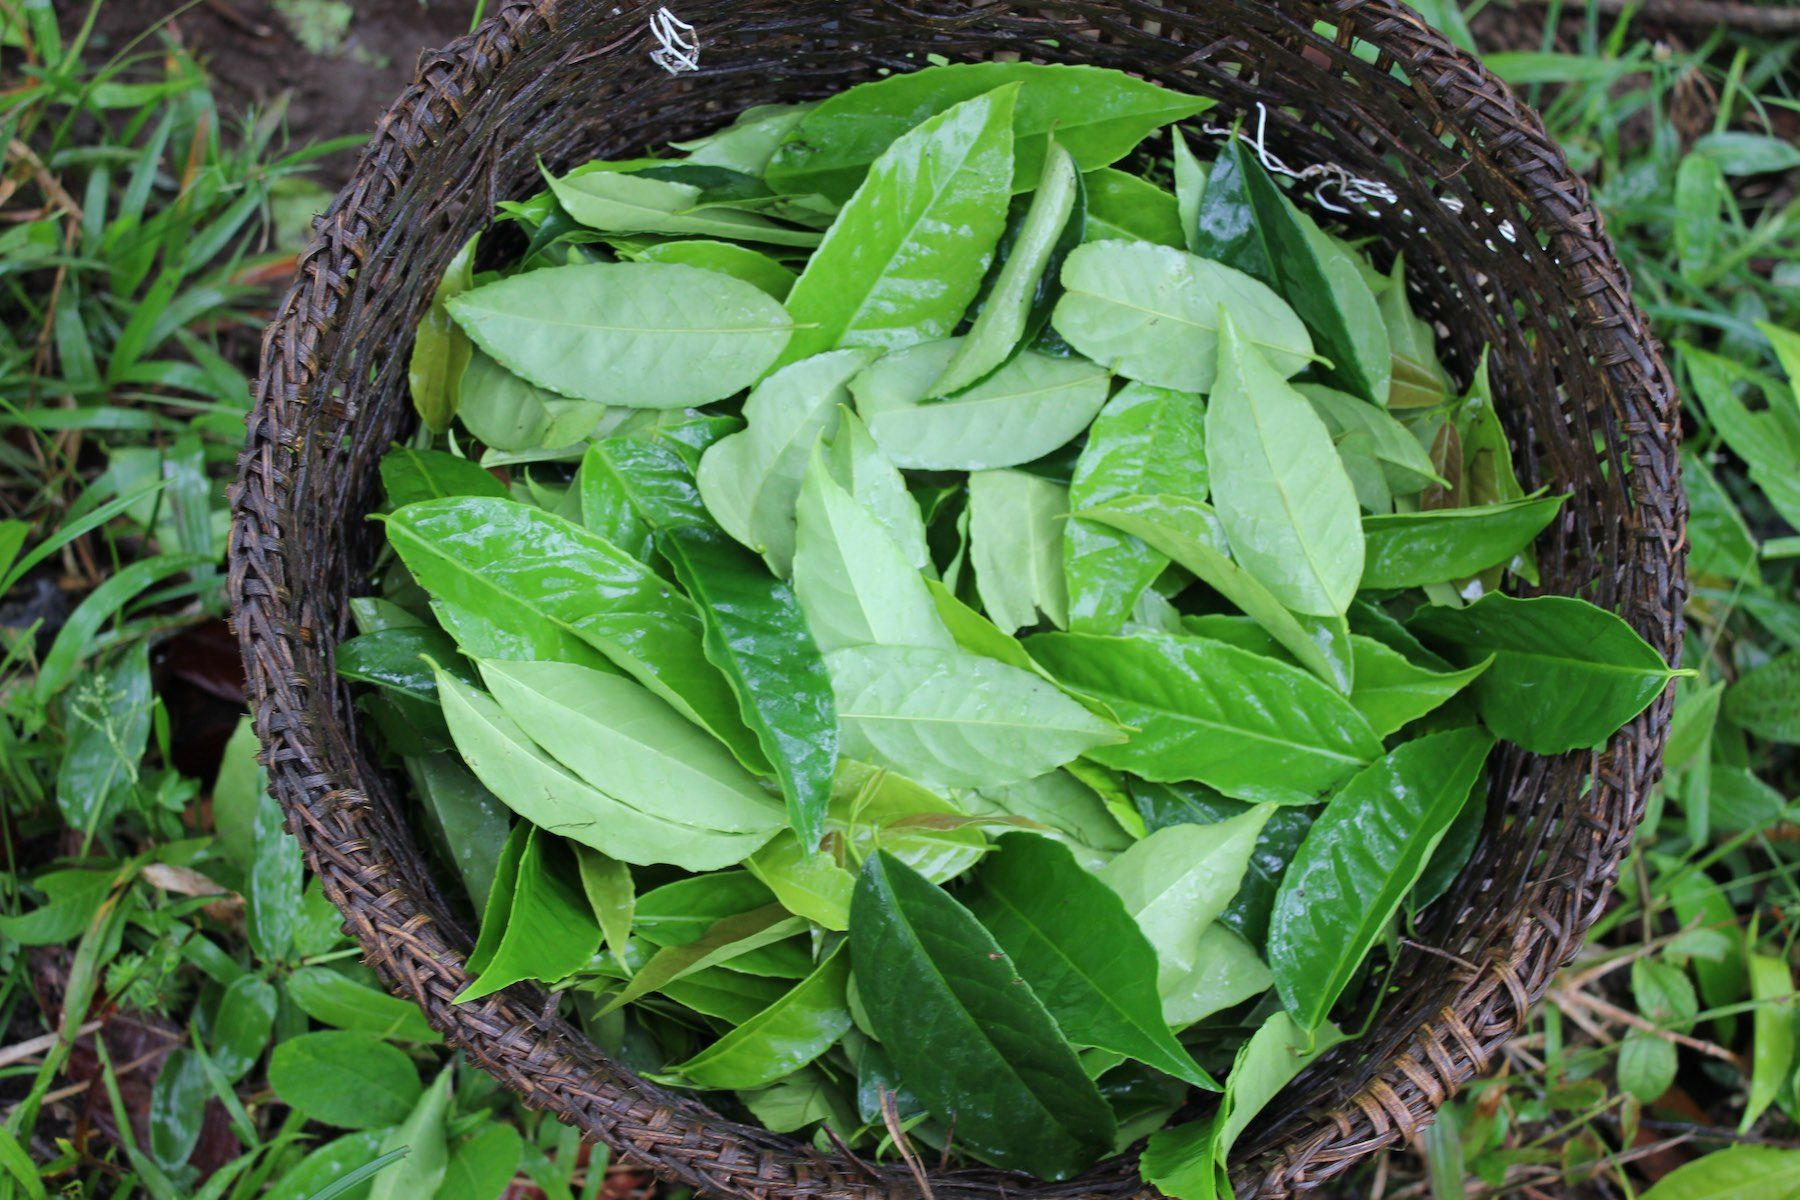 Guayusa leaves harvested. © Applied Food Sciences, Inc.